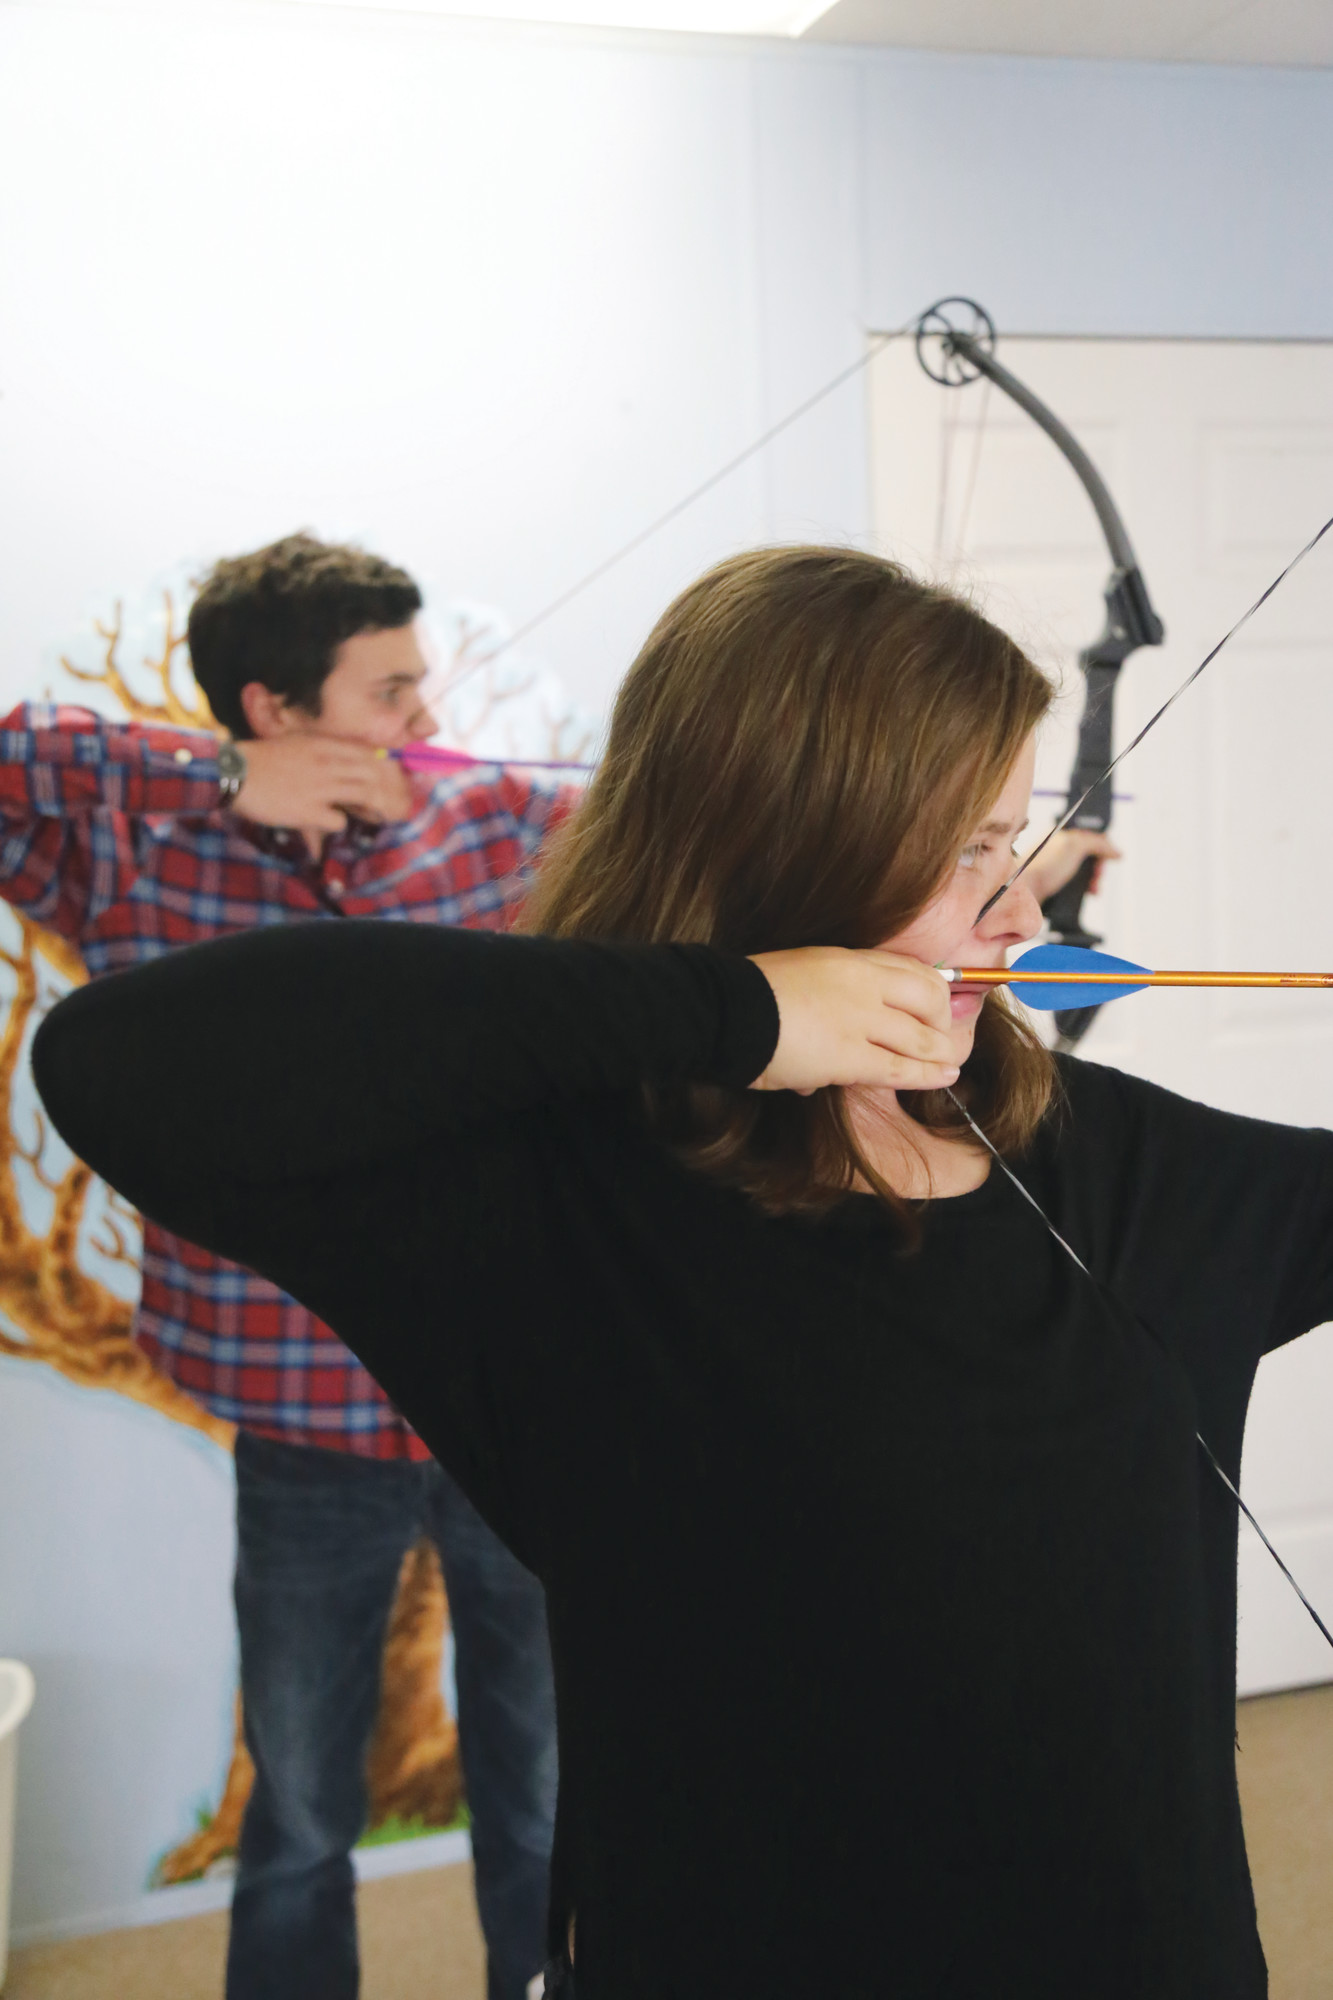 Thomas Sumter Academy archery team members Madeleine Britton (foreground) and Tyler Singletary (back) shoot during a recent practice session at the Dalzell school. The TSA archery team recently won its second straight SCISA state championship and the elementary and high school teams will compete in the upcoming National Archery in the Schools Program state tournament to be held March 27-29 at Sumter County Civic Center.